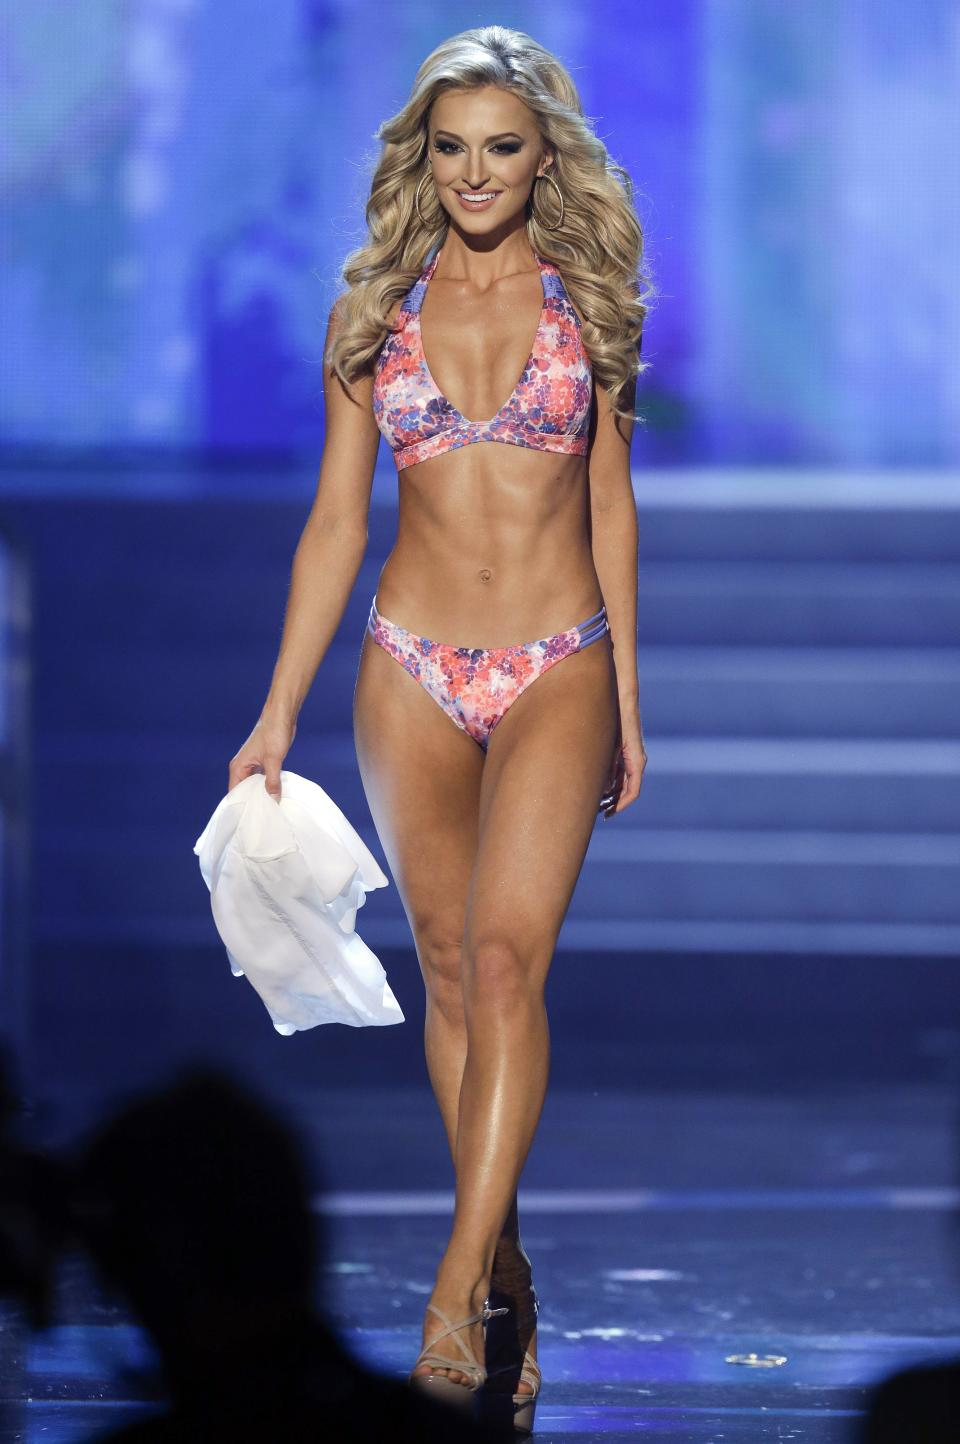 Melinda Bam, Miss South Africa, competes in the swimsuit portion of the Miss Universe competition, Wednesday, Dec. 19, 2012, in Las Vegas. (AP Photo/Julie Jacobson)